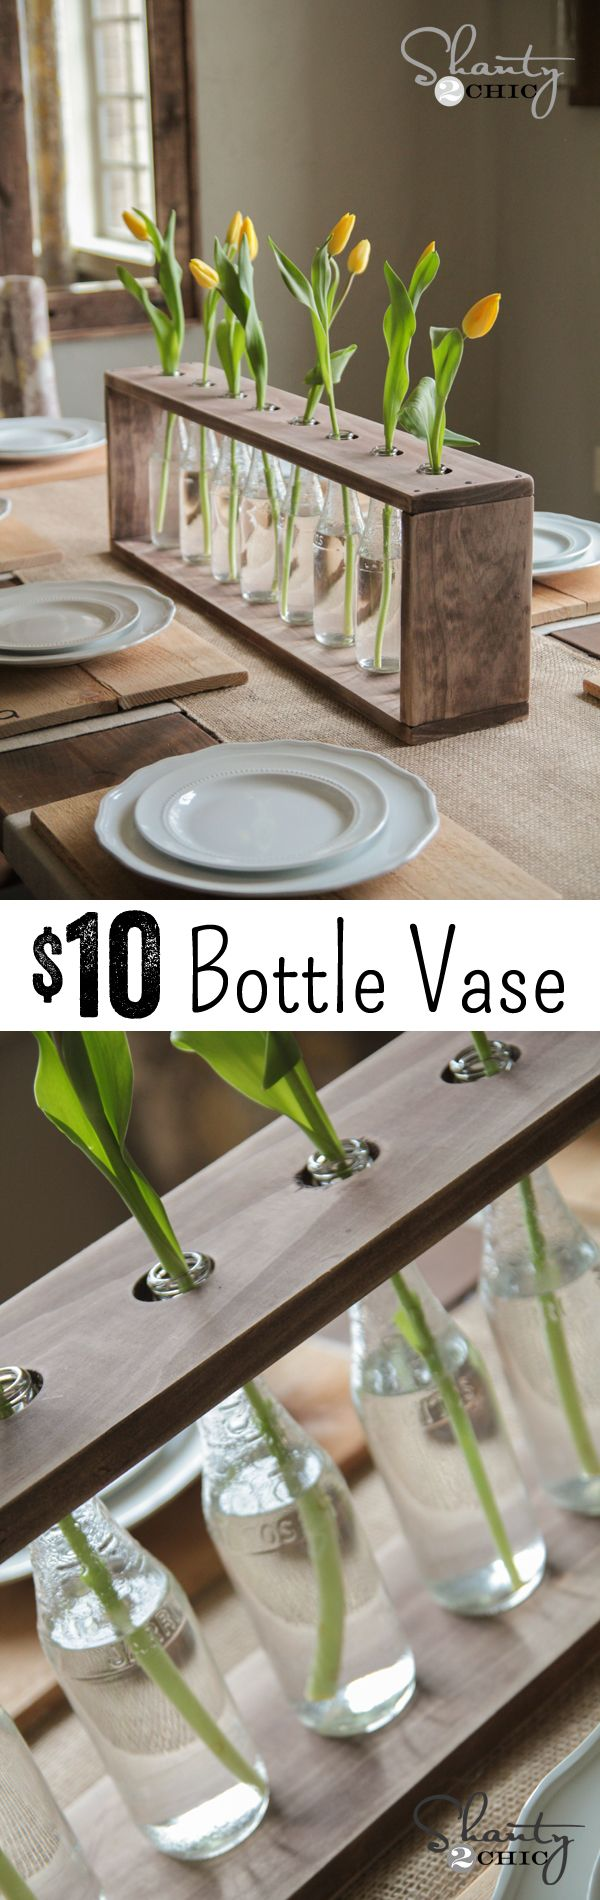 Easy and inexpensive tabletop decor using wood and glass bottles. Such an easy update for the upcoming season. #diy